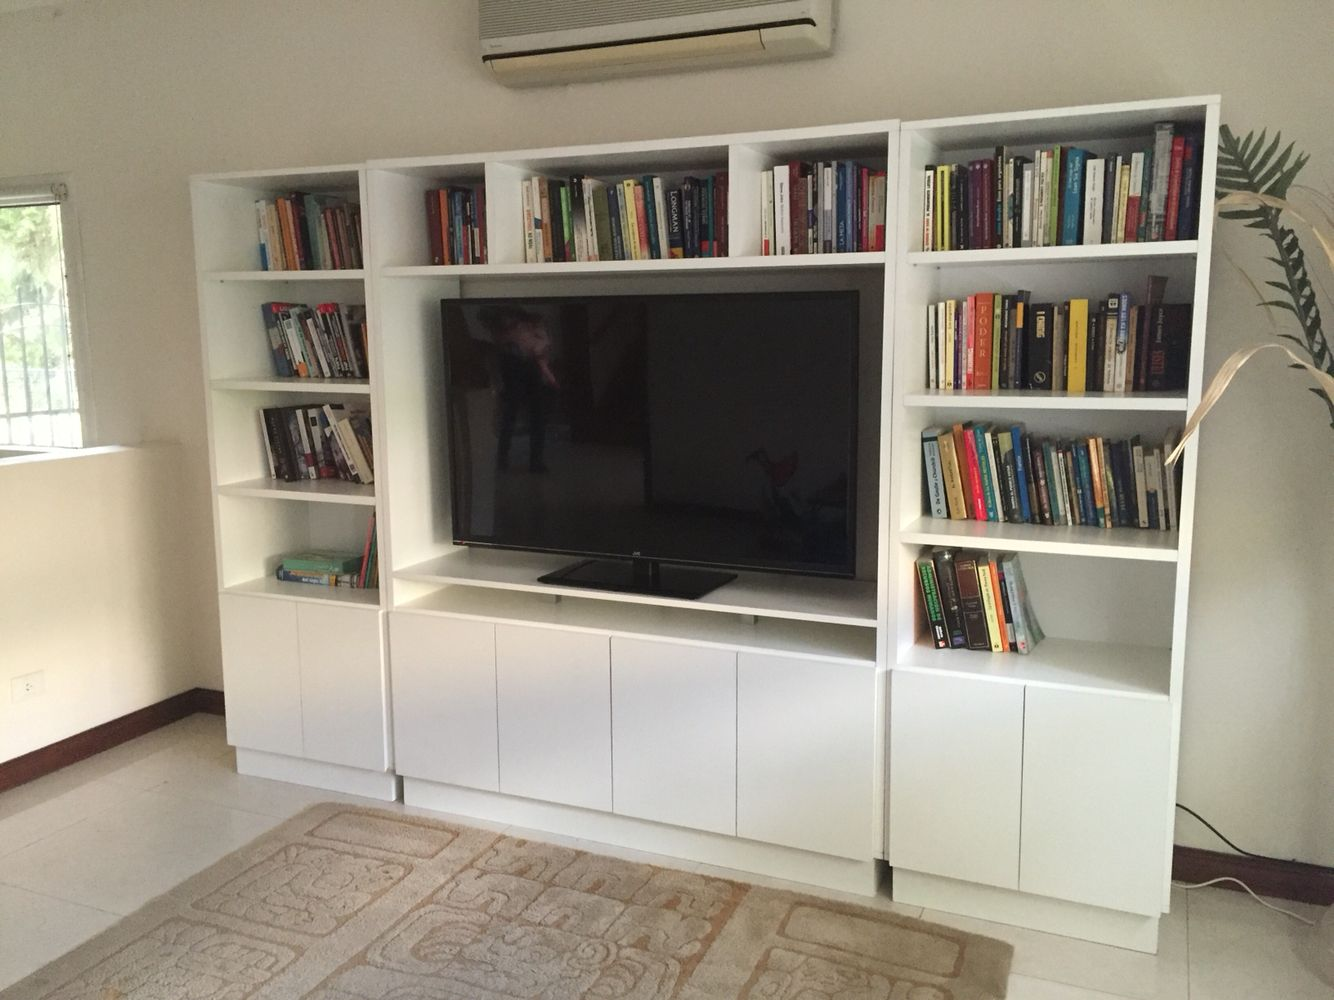 Biblioteca y mueble para tv mubles bookcase home for Muebles bibliotecas para living